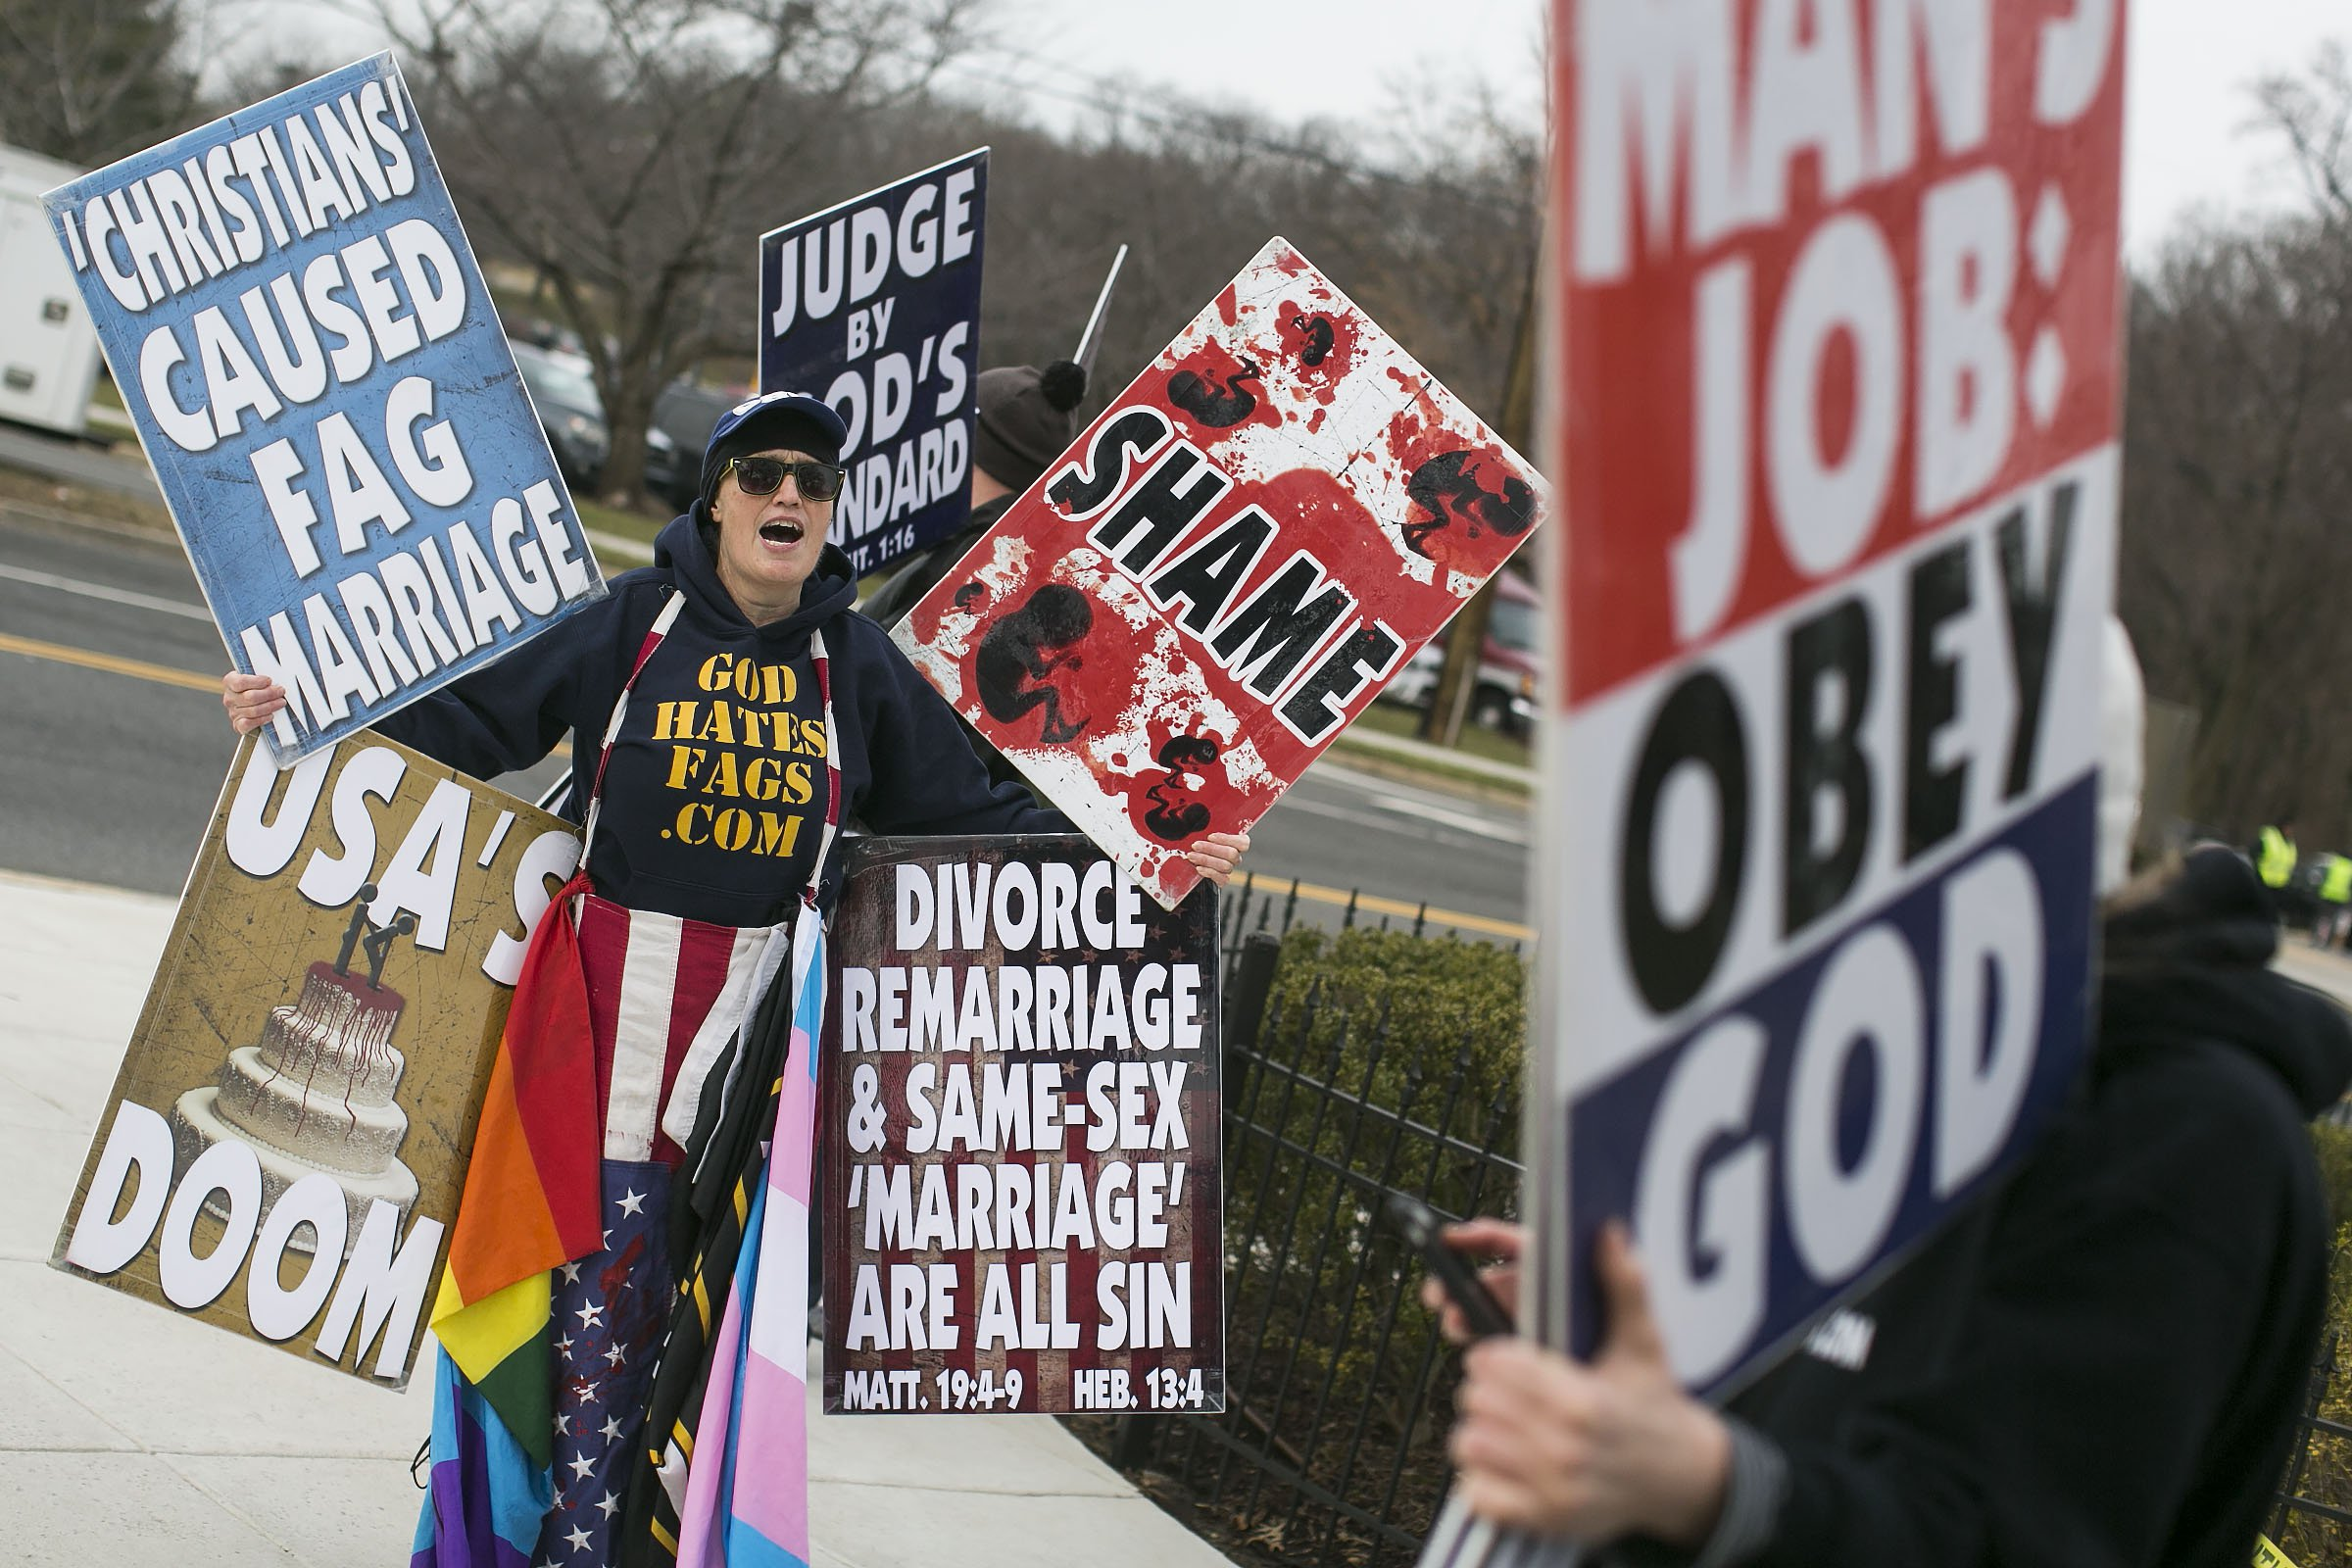 UNITED STATES - FEB. 20 - Members of the Westboro Baptist Church, based out of Topeka, Kansas, picket before the casket containing the body of the late Supreme Court Associate Justice Antonin Scalia arrives at the Basilica of the National Shrine of the Immaculate Conception in Washington for funeral mass services, Saturday, Feb. 20, 2016. (Photo By Al Drago/CQ Roll Call)